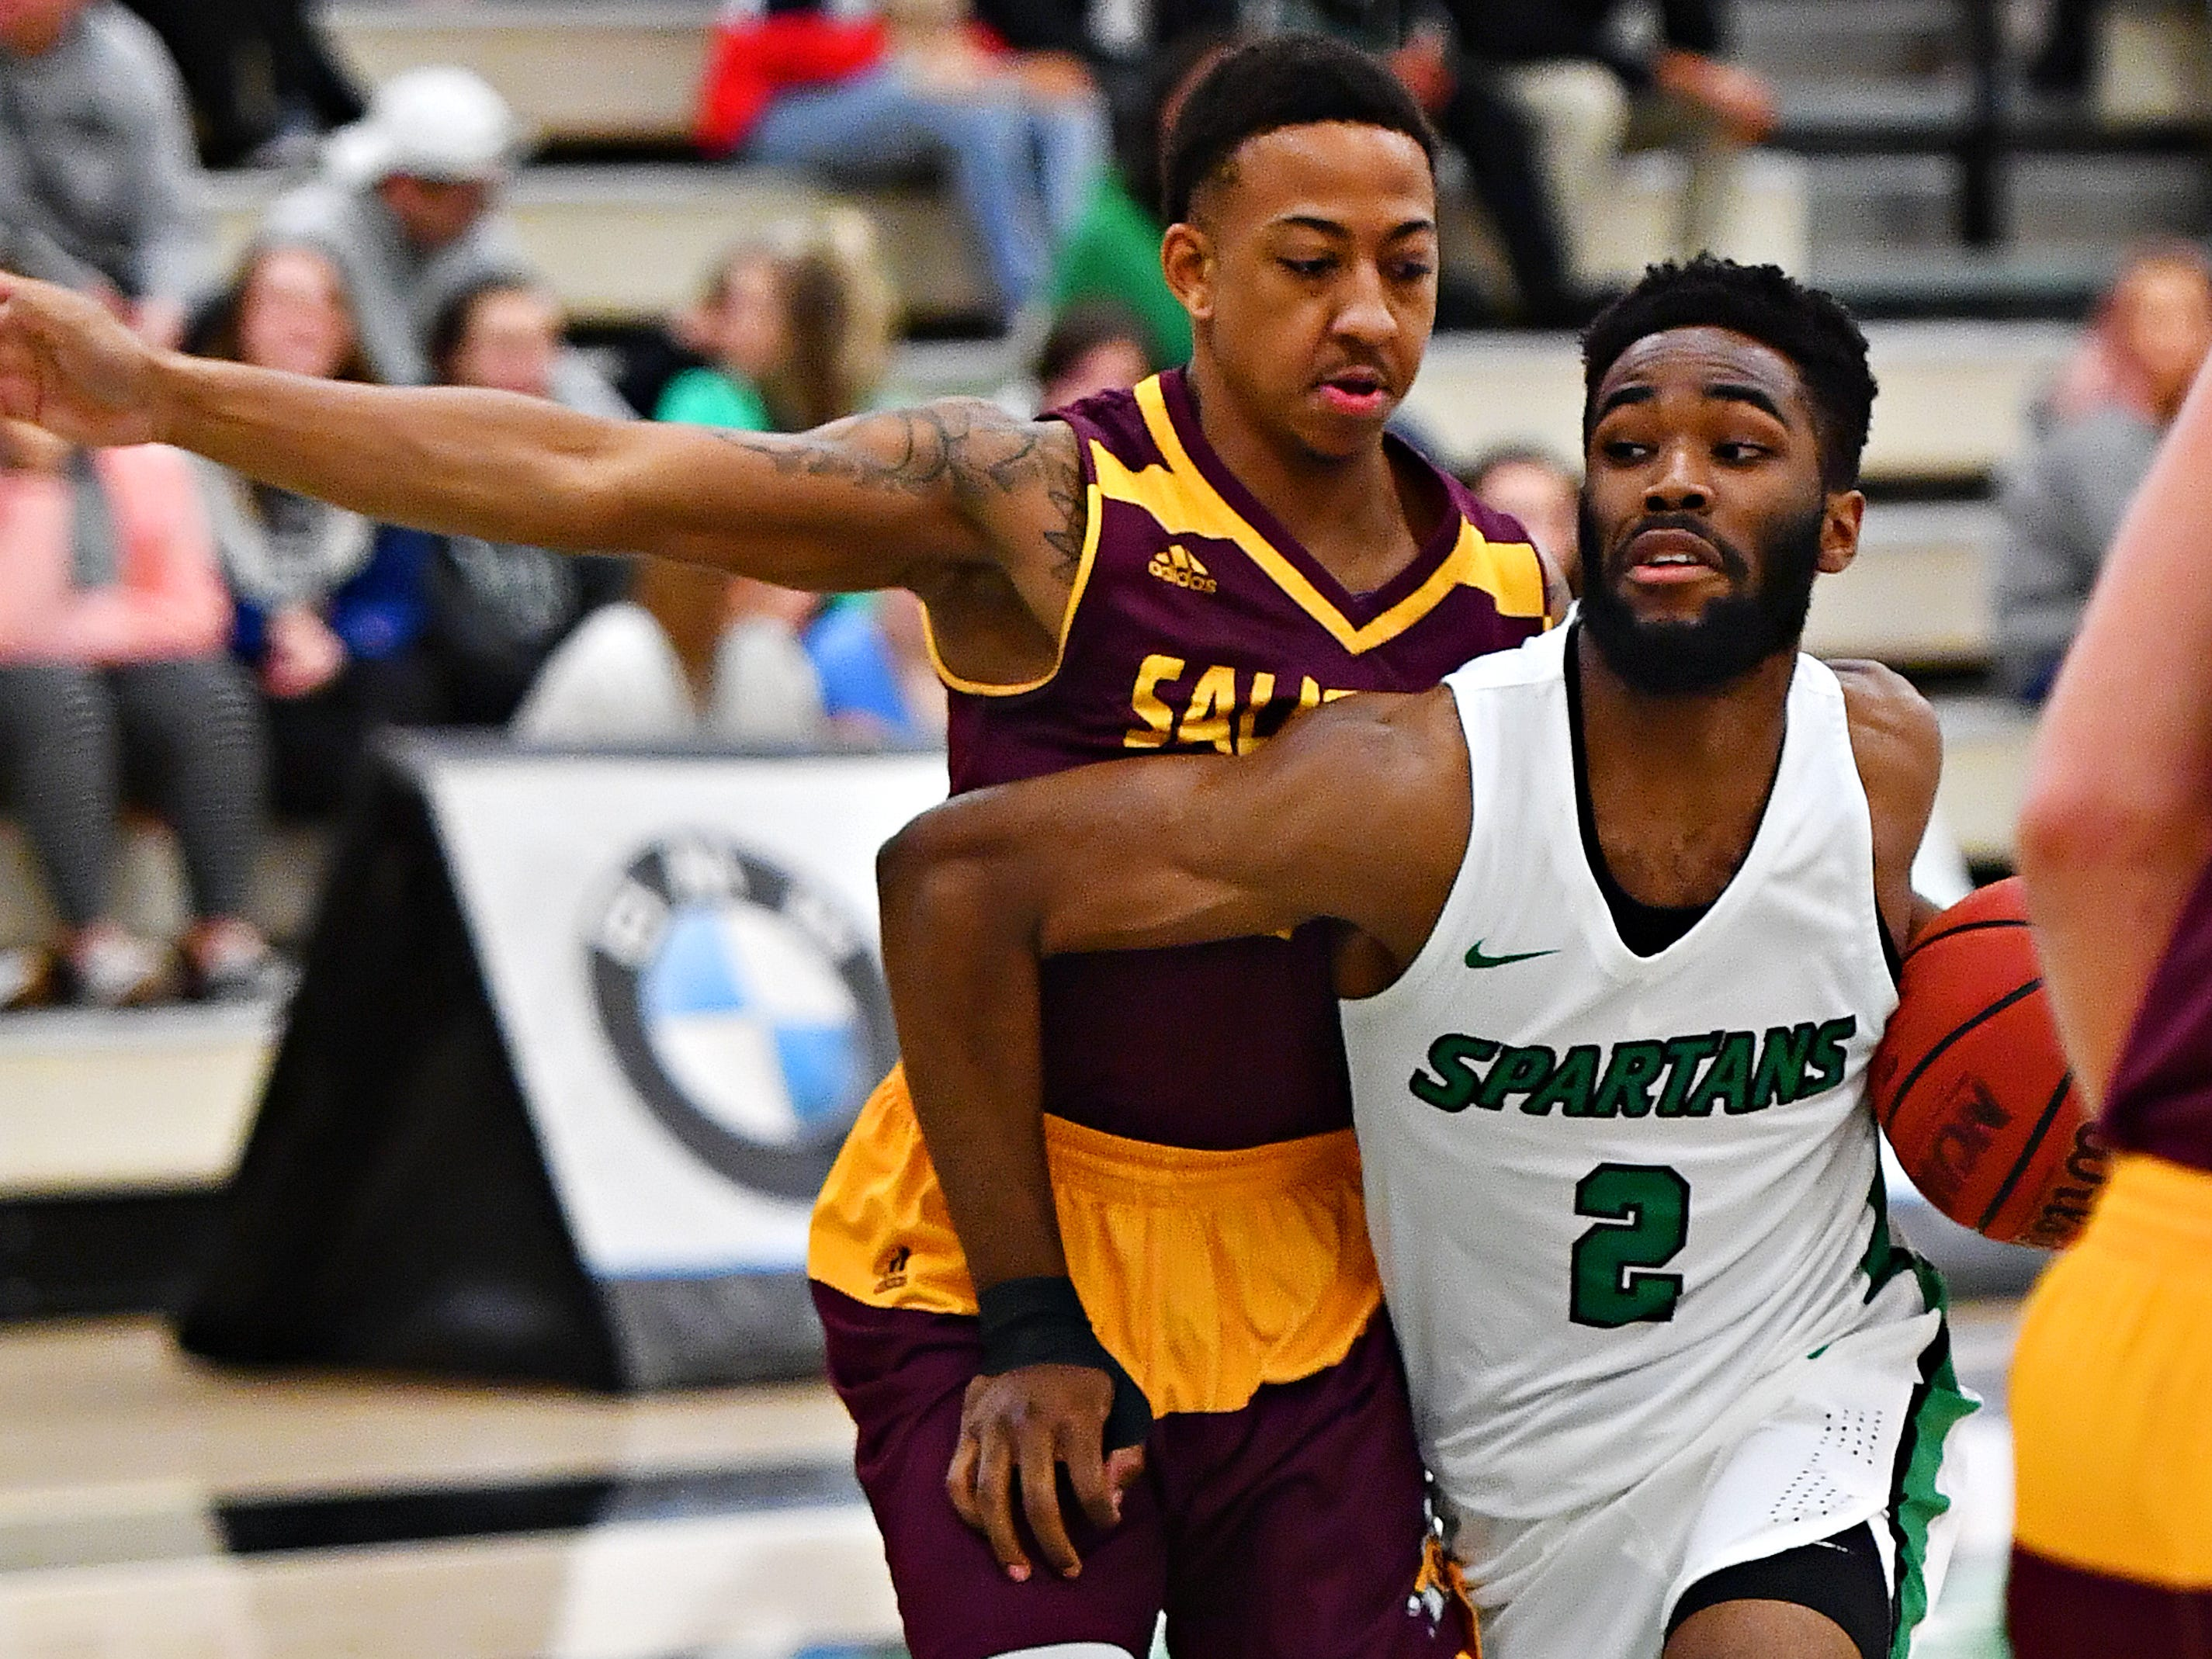 York College vs Salisbury during men's basketball action at Grumbacher Sport and Fitness Center at York College of Pennsylvania in Spring Garden Township, Wednesday, Feb. 6, 2019. Dawn J. Sagert photo